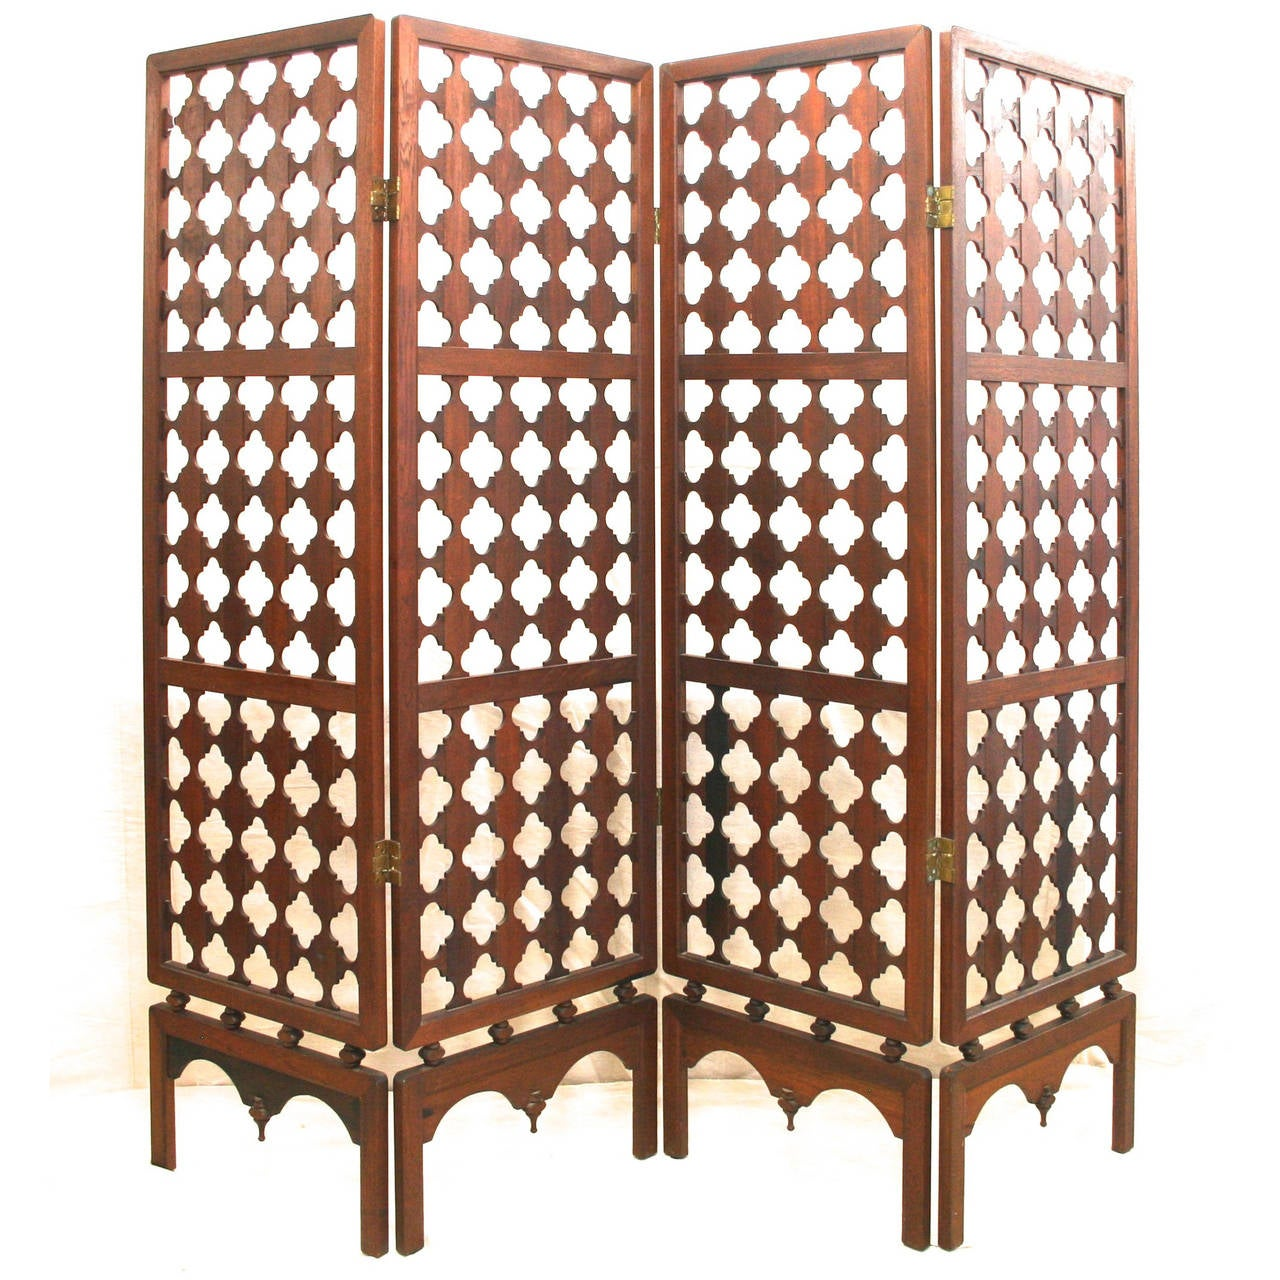 Room Divider Wood vintage four-panel highly carved wood room divider screen at 1stdibs